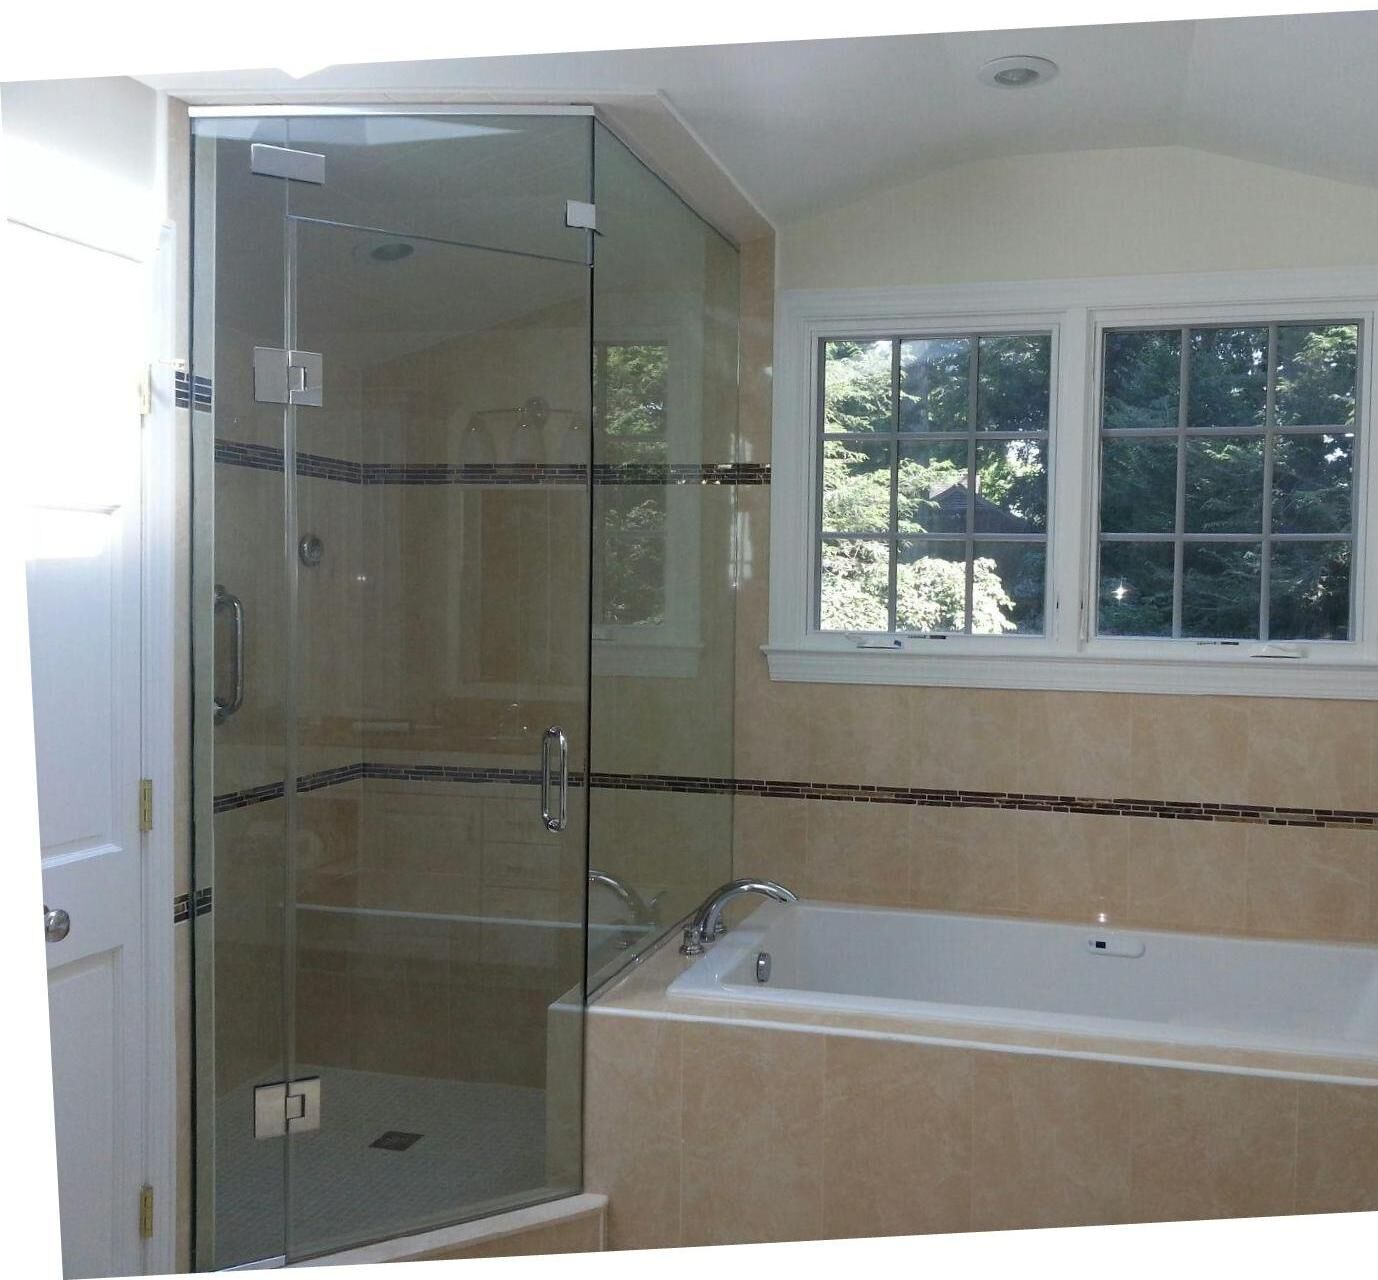 Frameless shower enclosures rockville gaithersburg potomac frameless steam shower 62413 min eventelaan Images